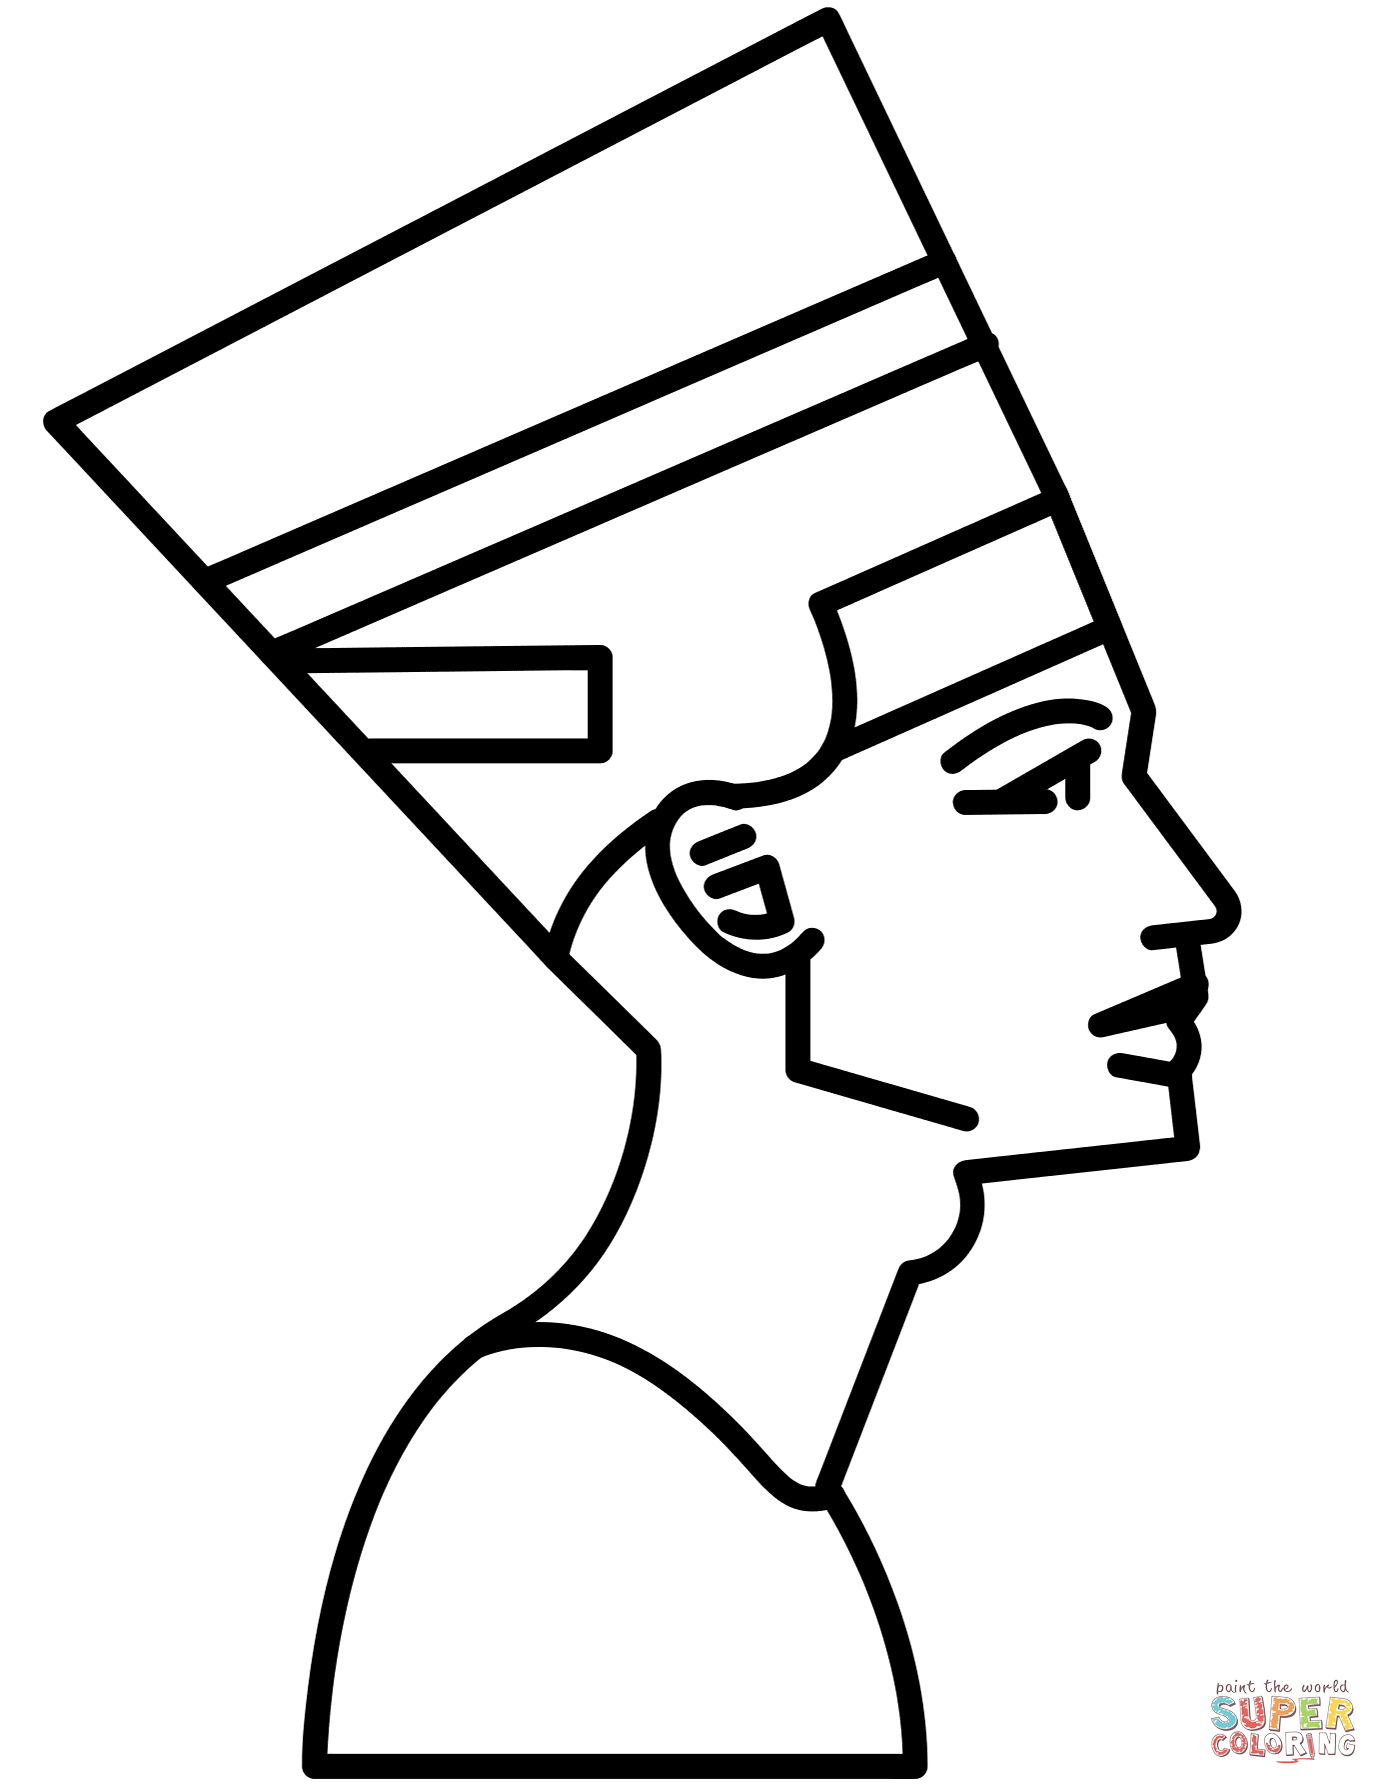 The Best Free Sphinx Coloring Page Images Download From 50 Free